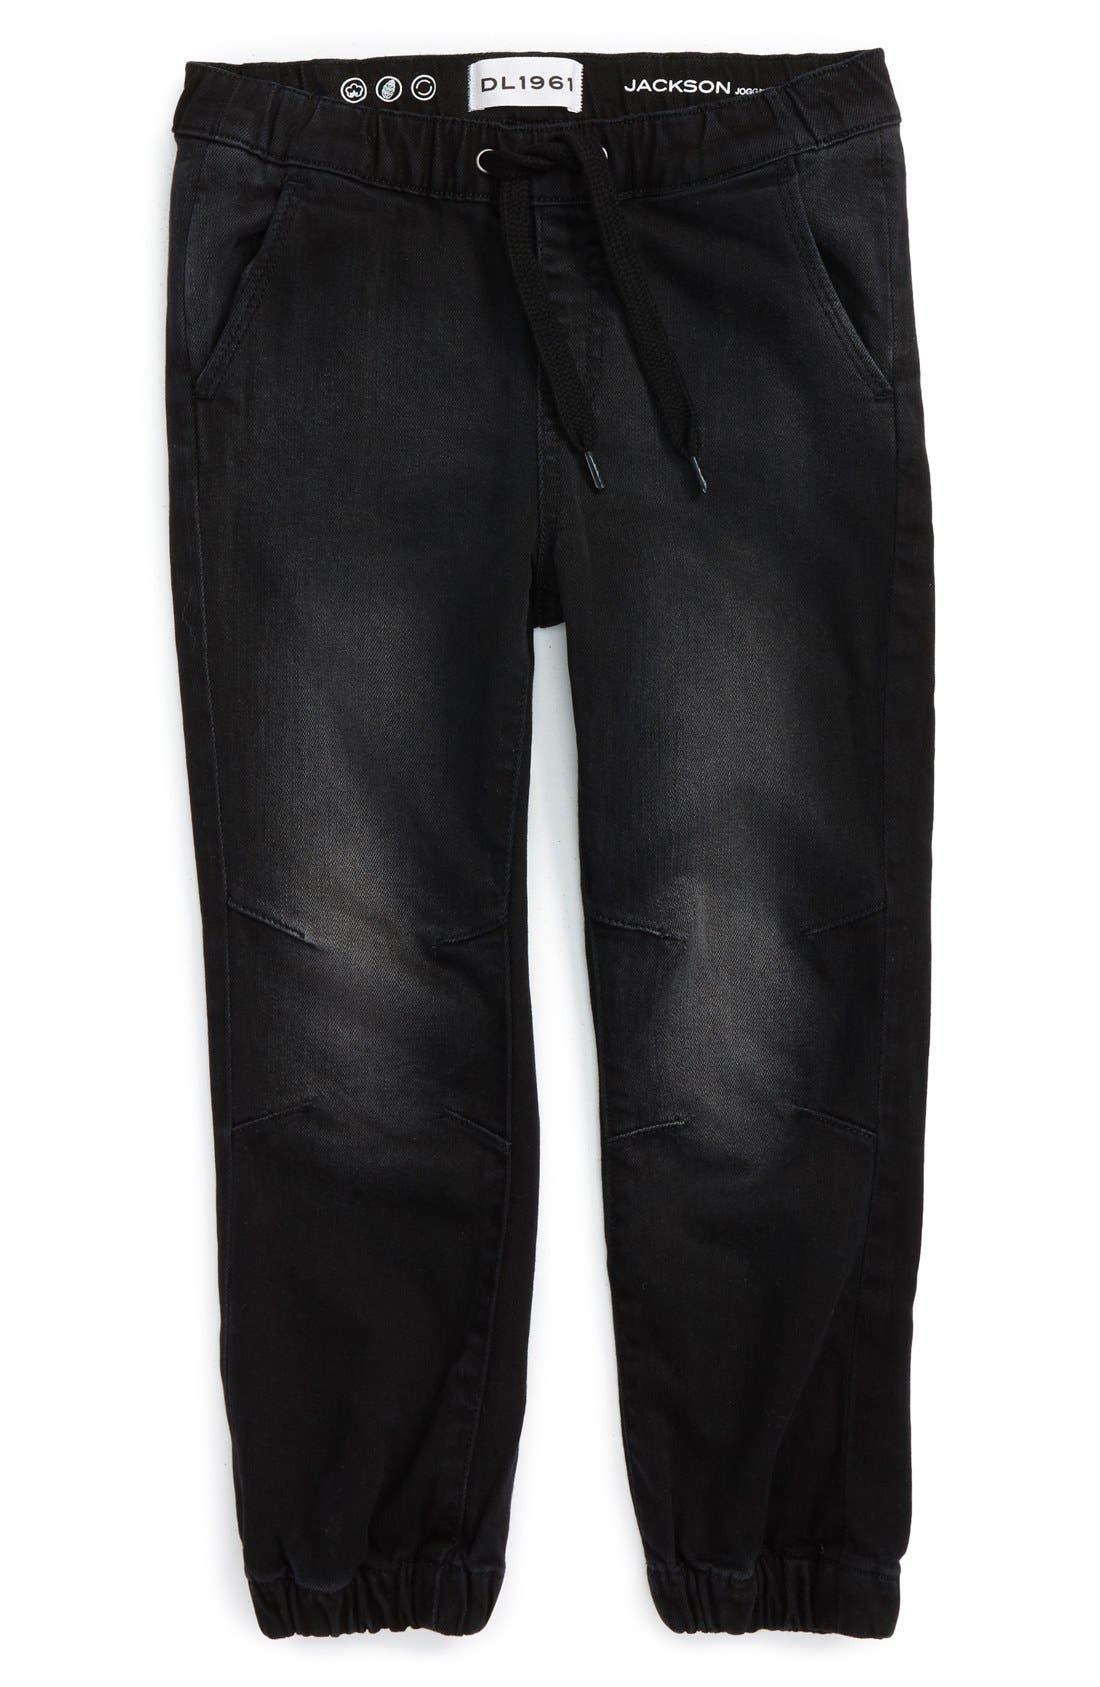 'Jackson' Jogger Pants,                         Main,                         color,